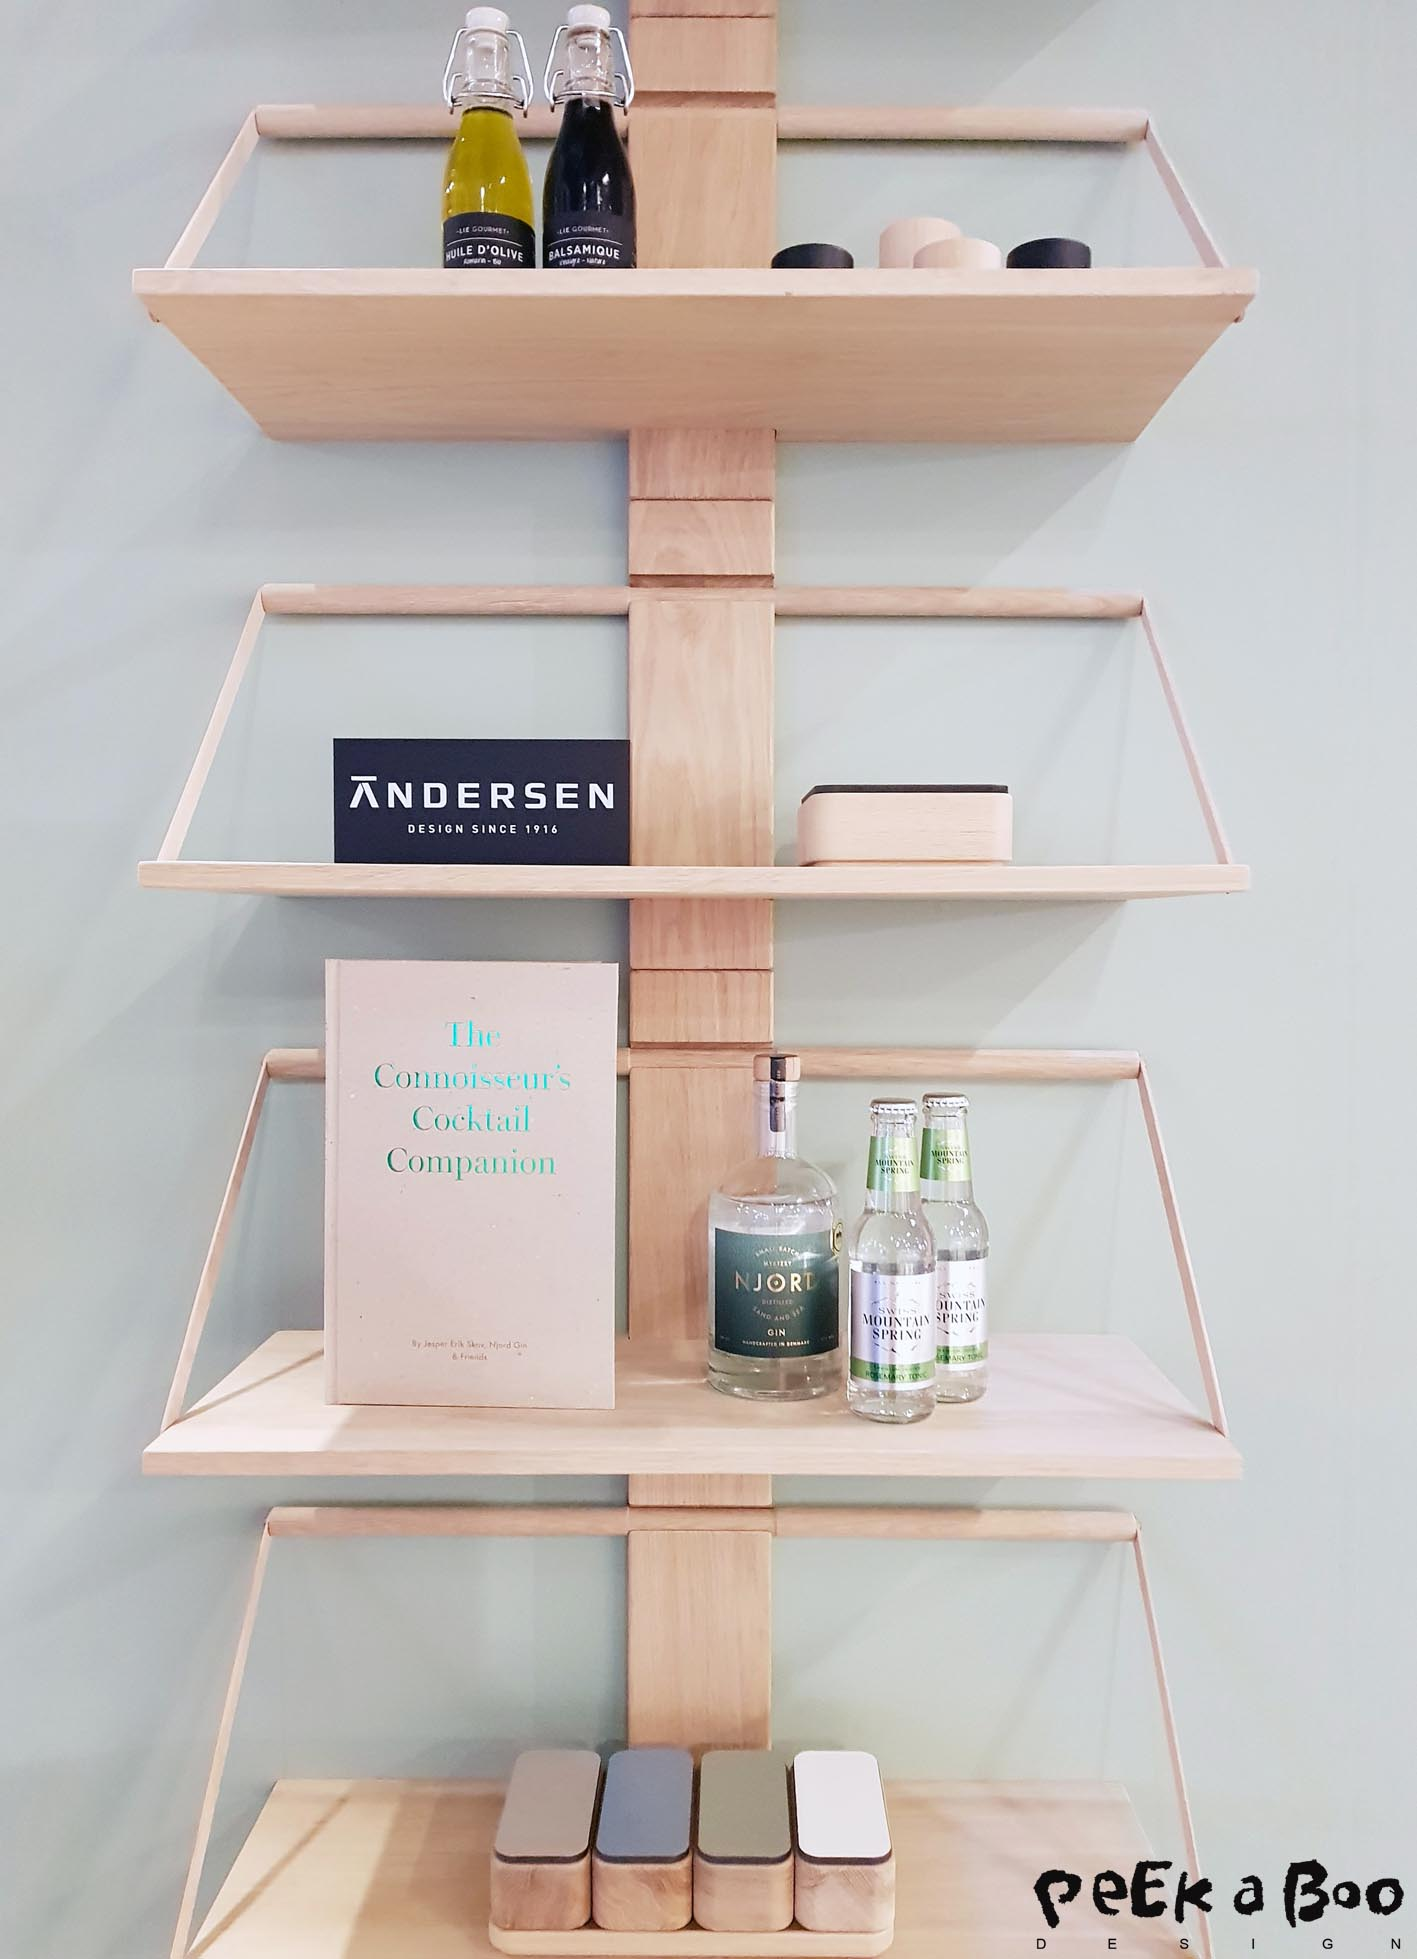 Shelf systems are booming and this one is really a good sulotion from Andersen Furniture.